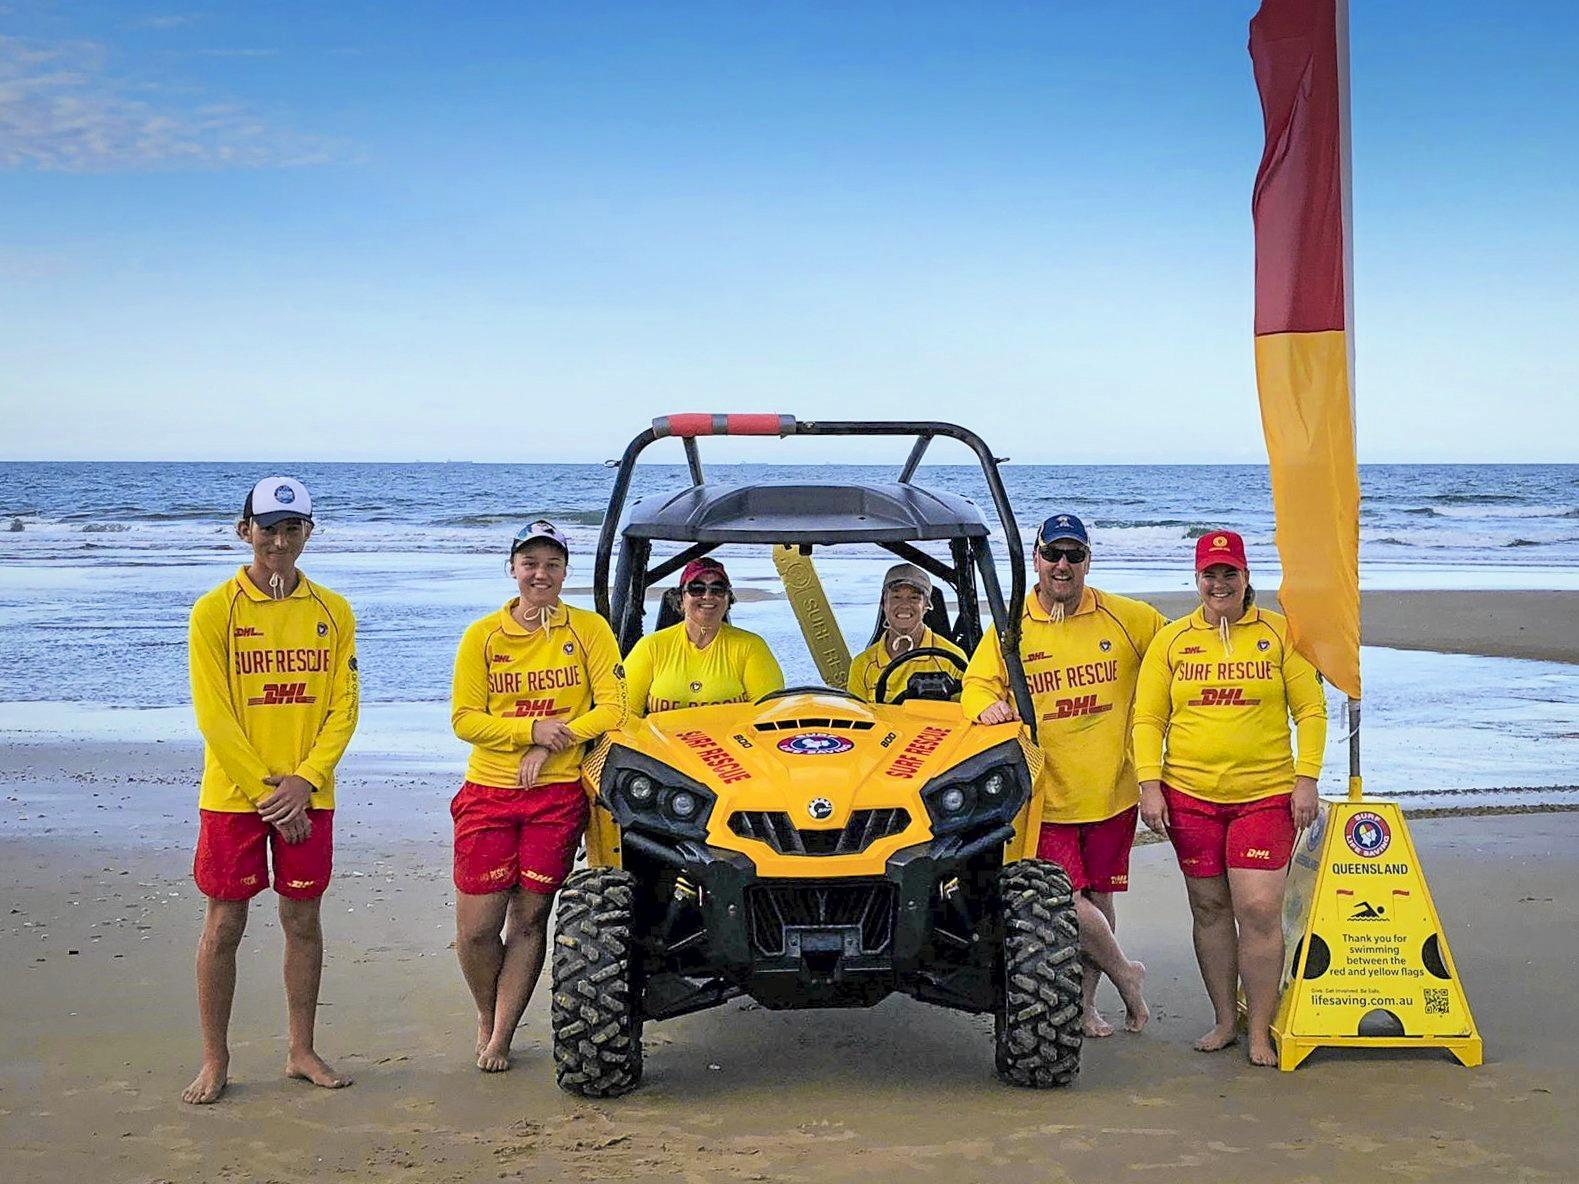 BEACH WATCH: Surf lifesavers will be back on duty this weekend at beaches around the region